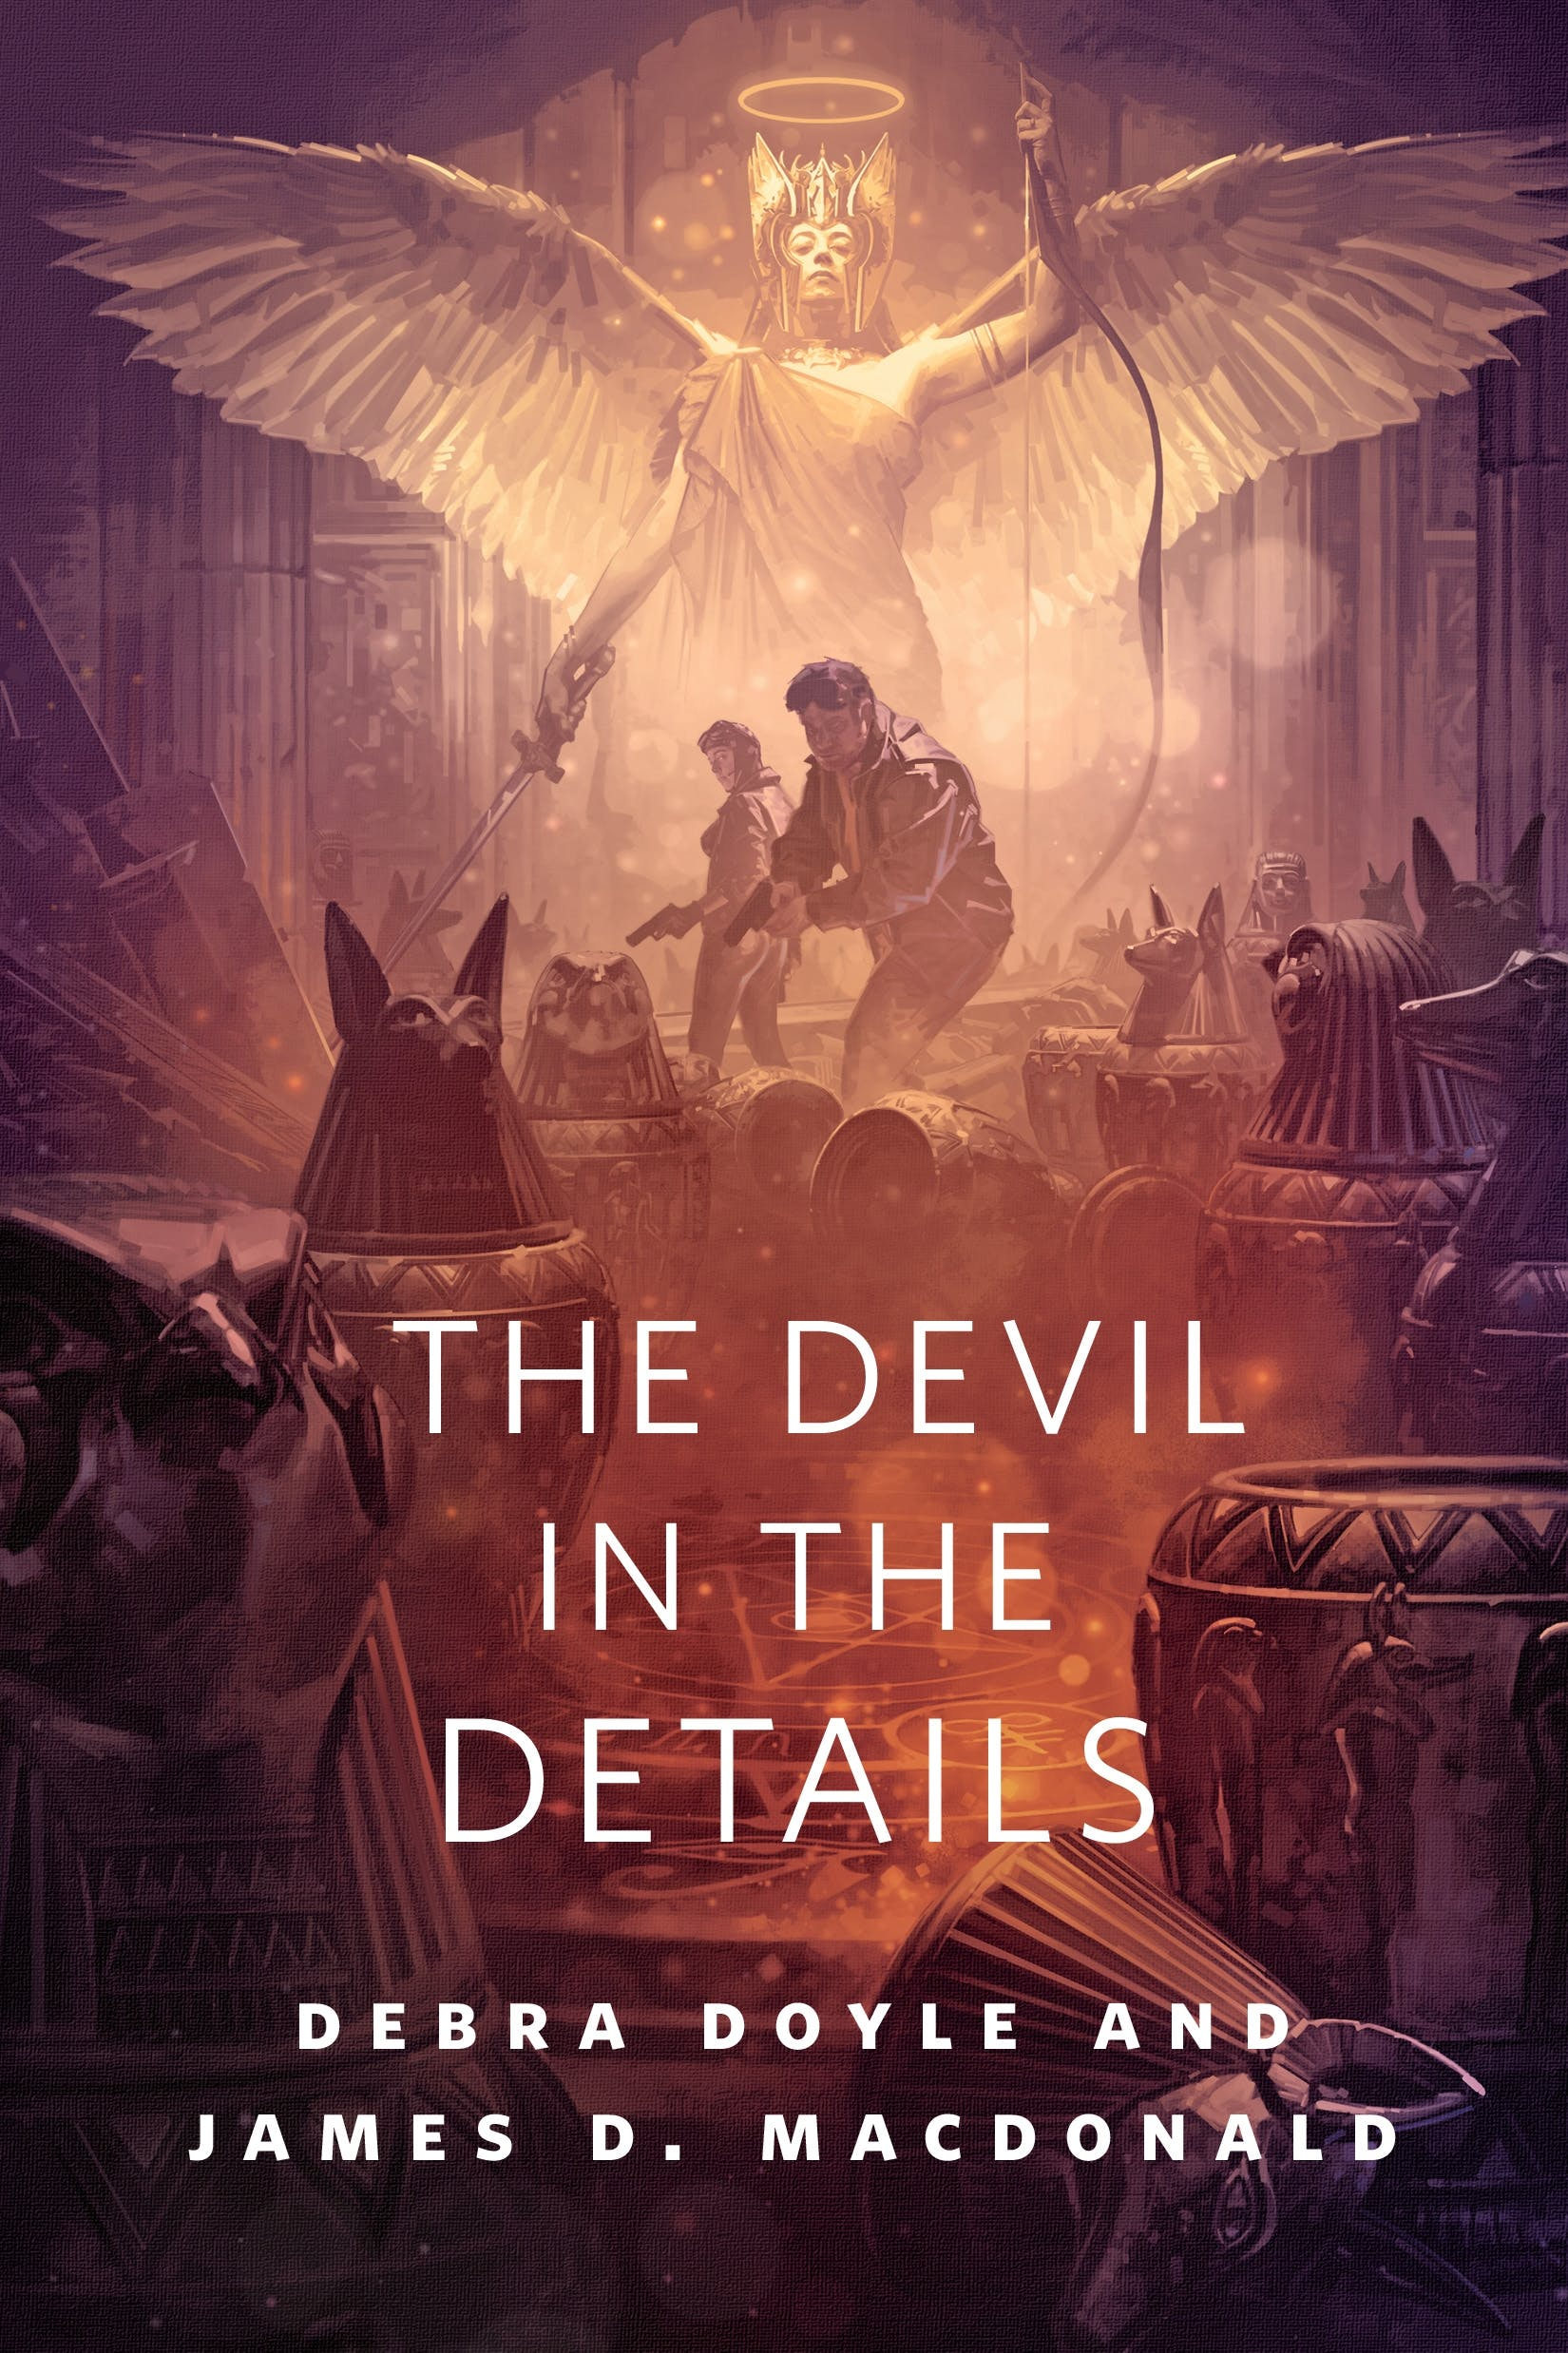 Image of The Devil in the Details